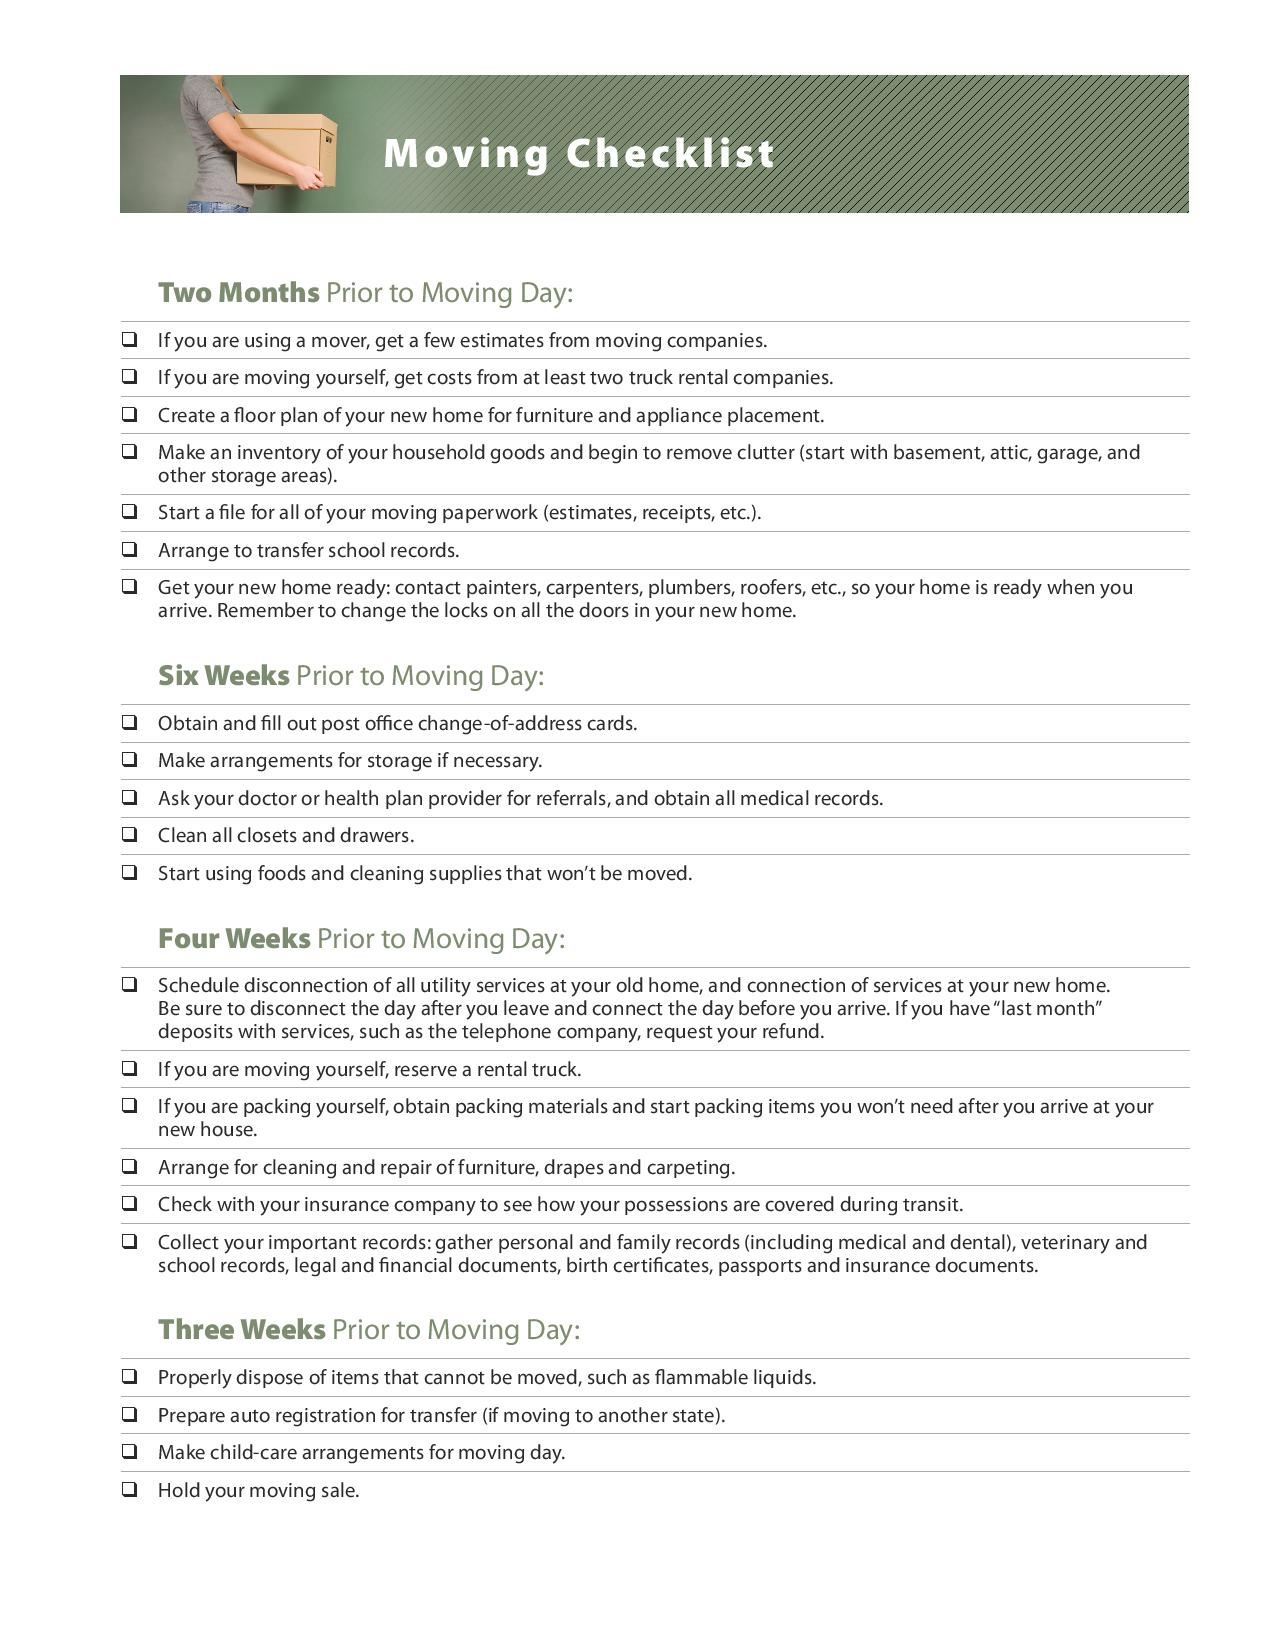 membersbuffiniandcompanycom images blitz agent week7 moving checklist page 001